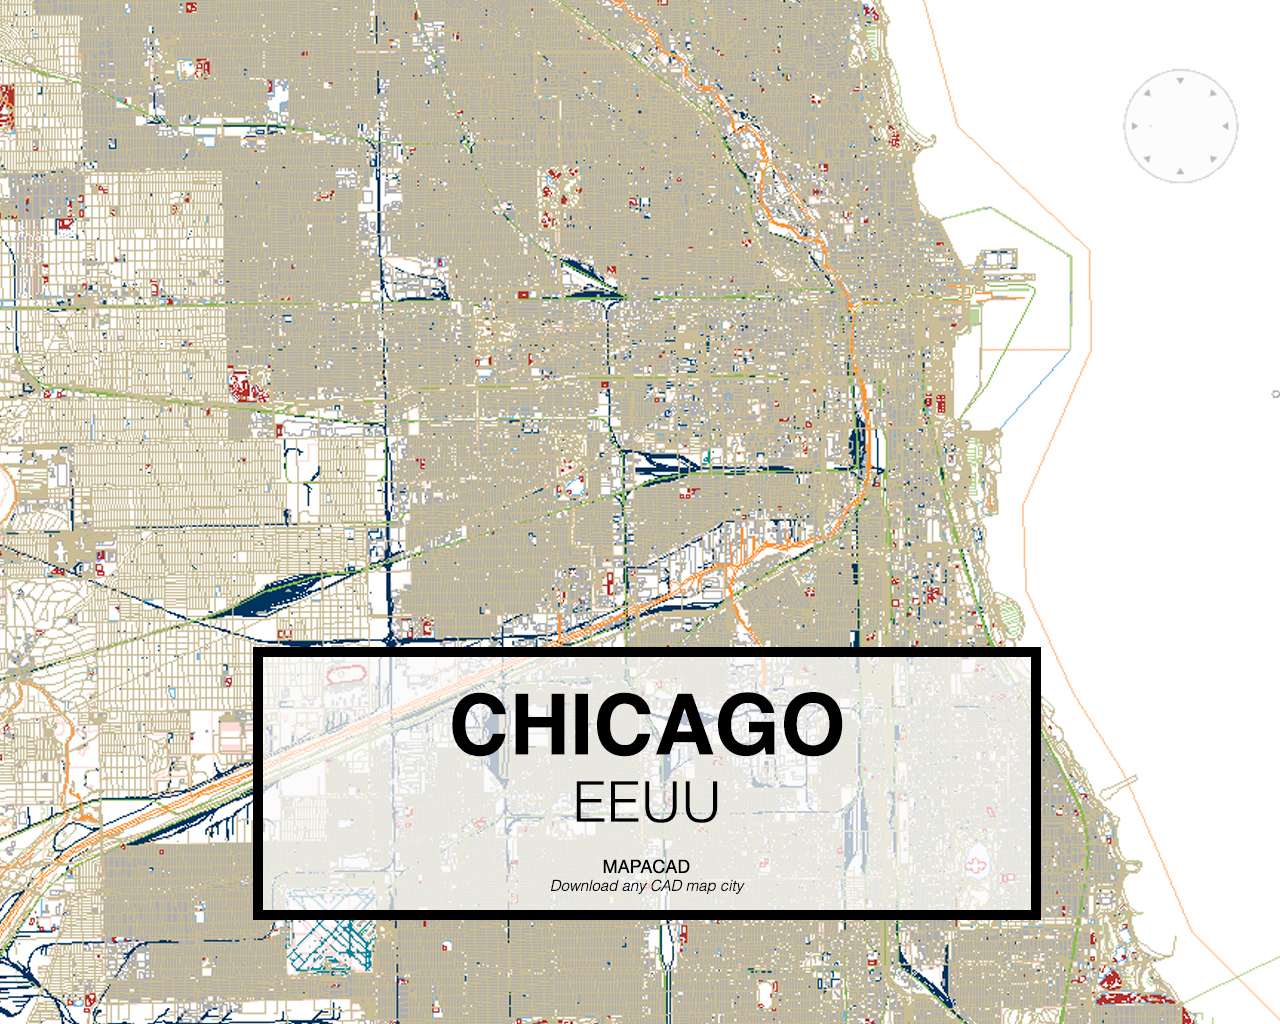 Download any cad map city mapacad chicago eeuu 001 mapacad download map cad dwg gumiabroncs Gallery